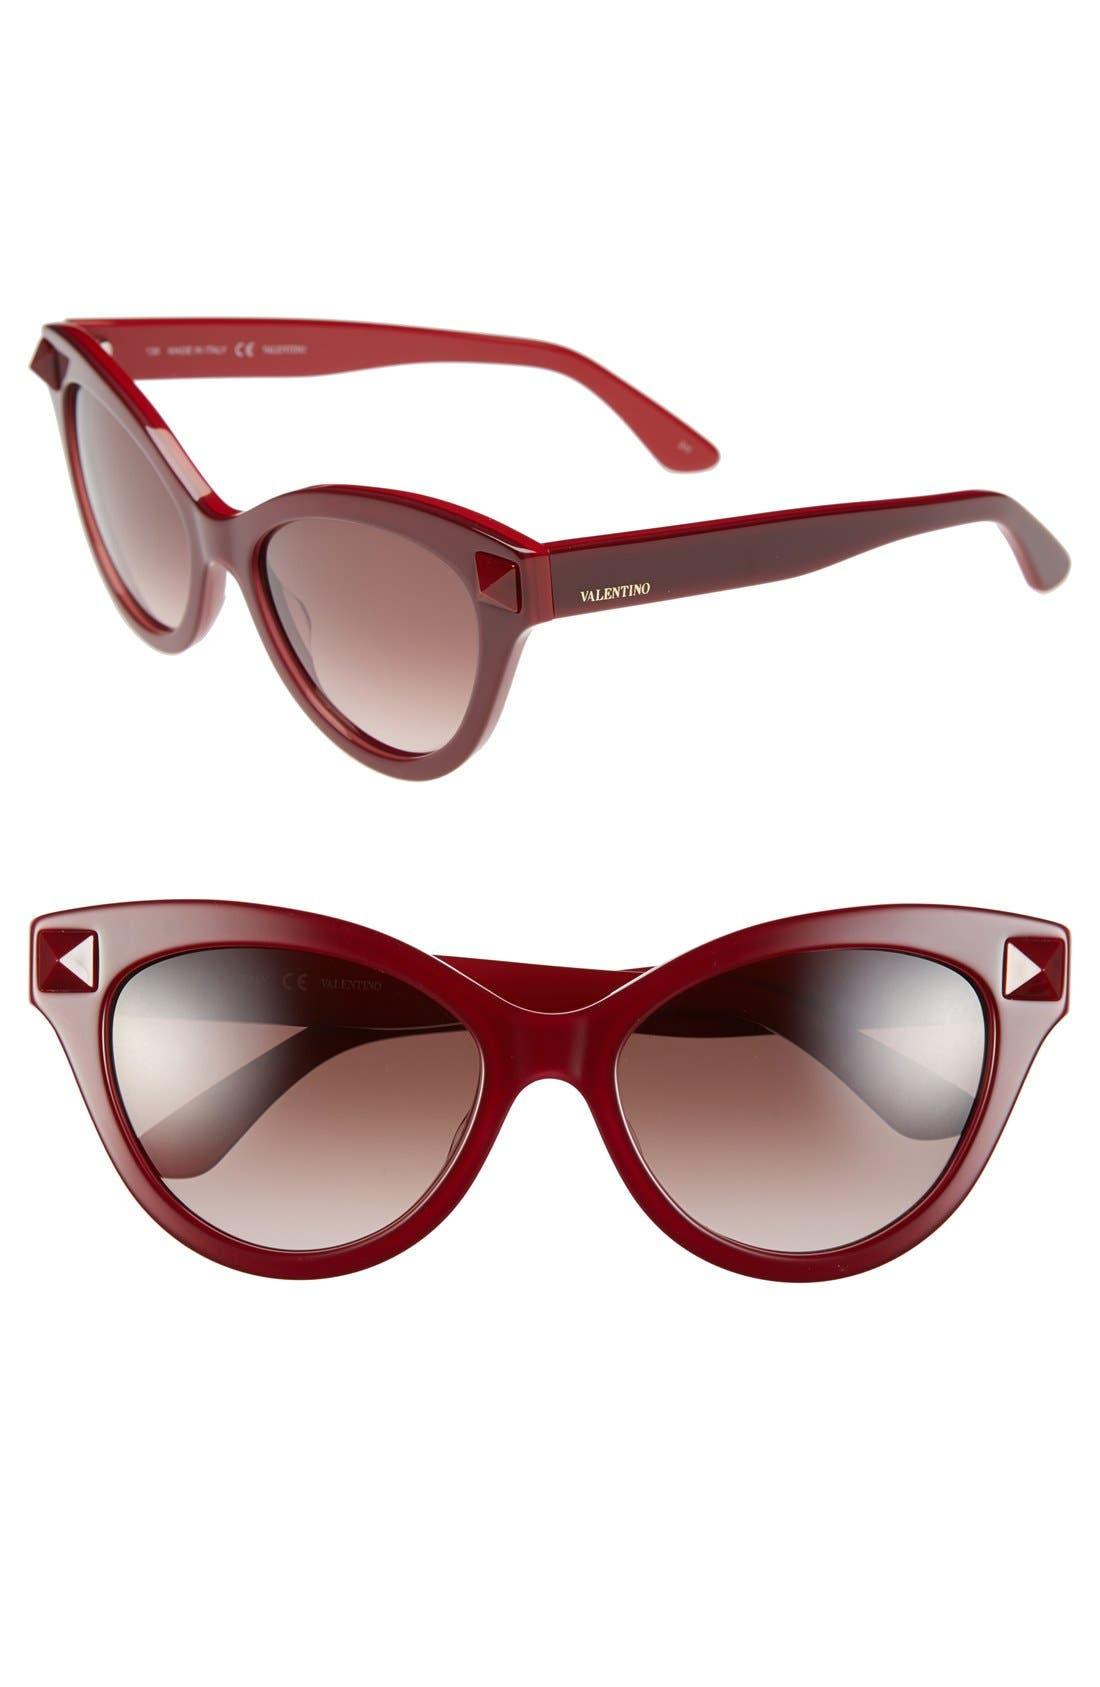 Alternate Image 1 Selected - Valentino 'Rockstud' 53mm Cat Eye Sunglasses